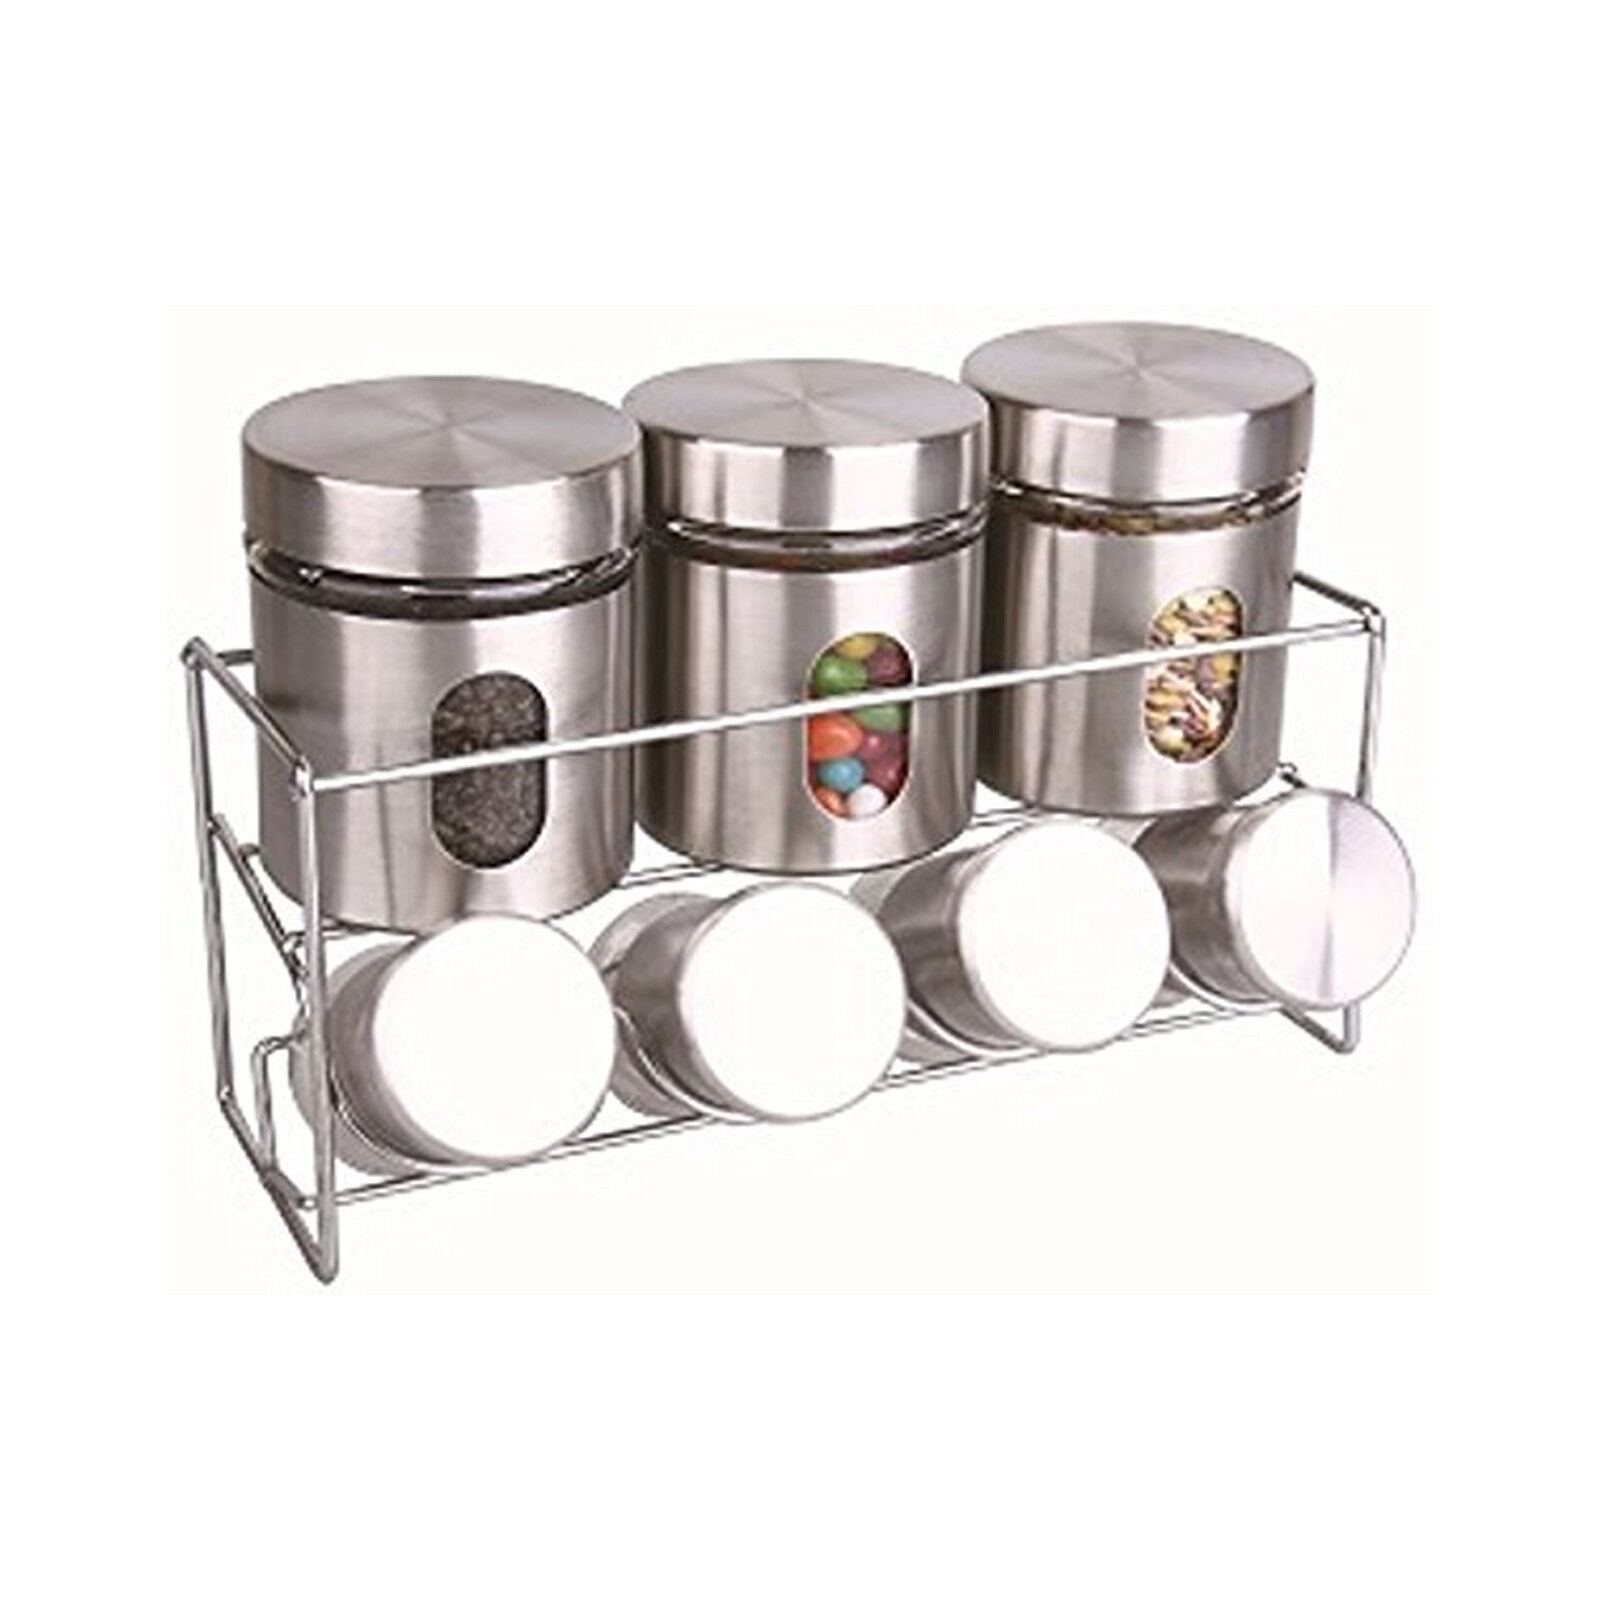 revolving spice racks for kitchen sink grid stainless steel glass collection of herb jar